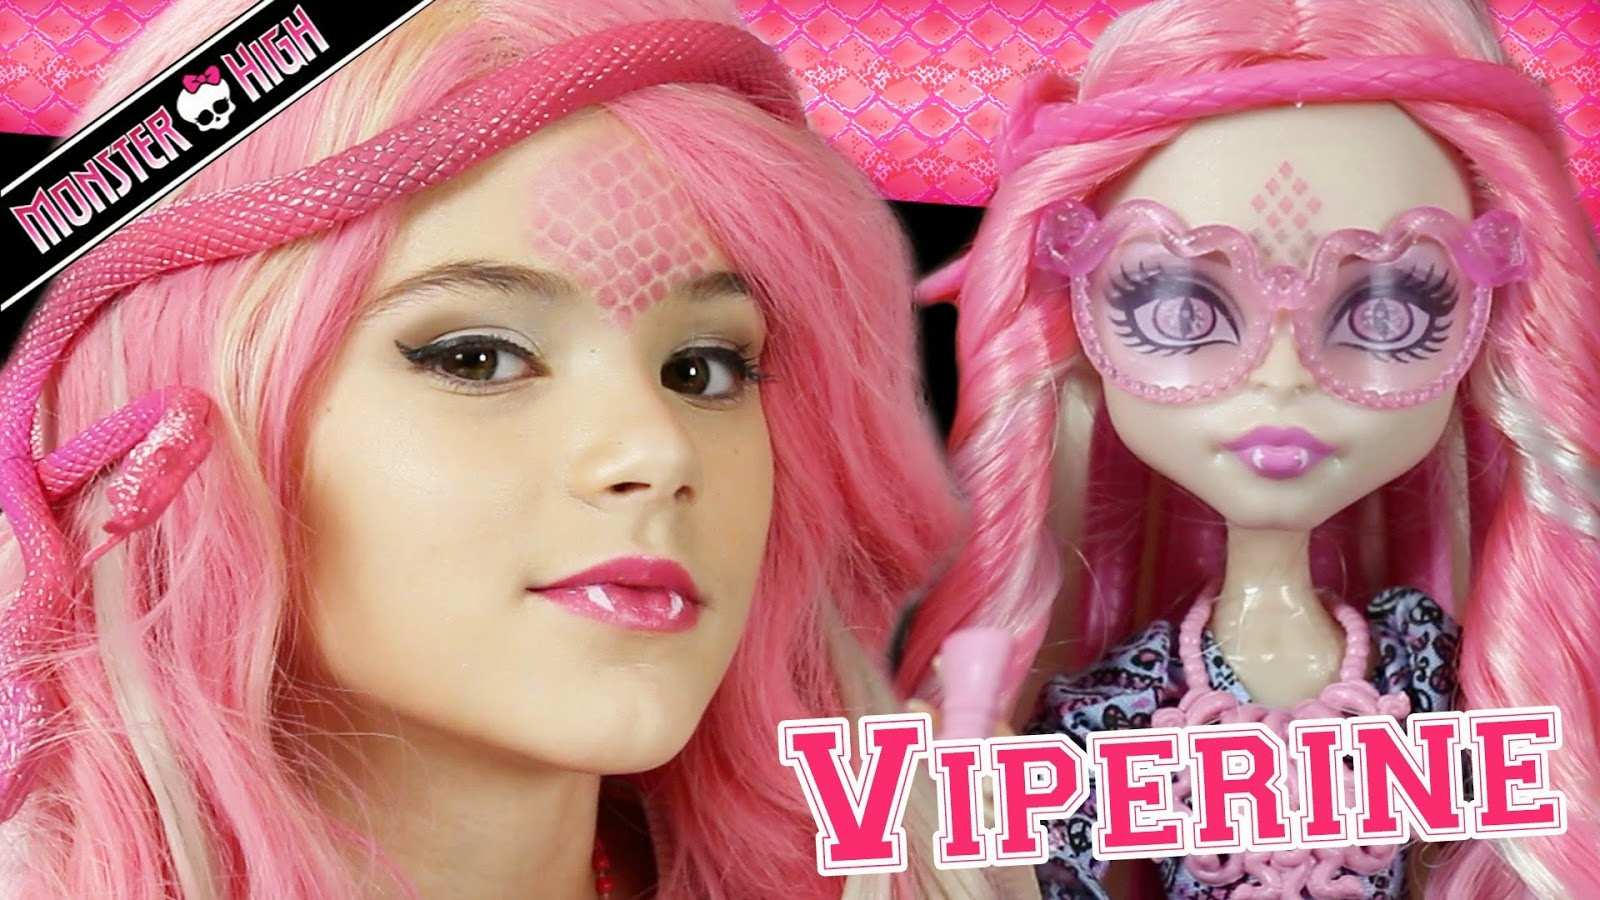 Calaminthes Clawdeen & Fashiondoll Friends: Opening The 3rd Door And ...